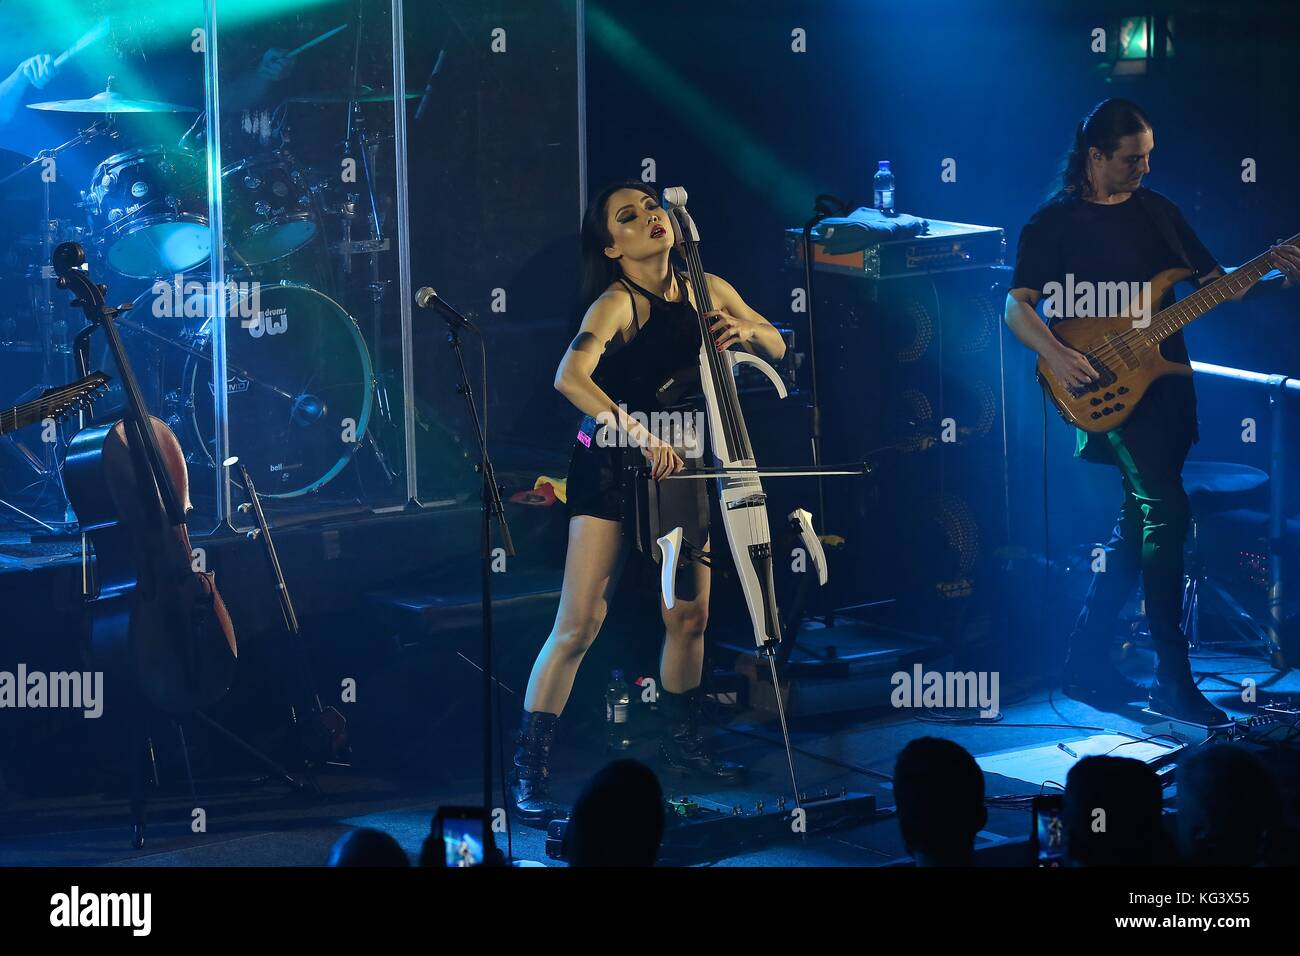 Tina Guo in Concert at London Concert at Round Chapel 2017 - Stock Image